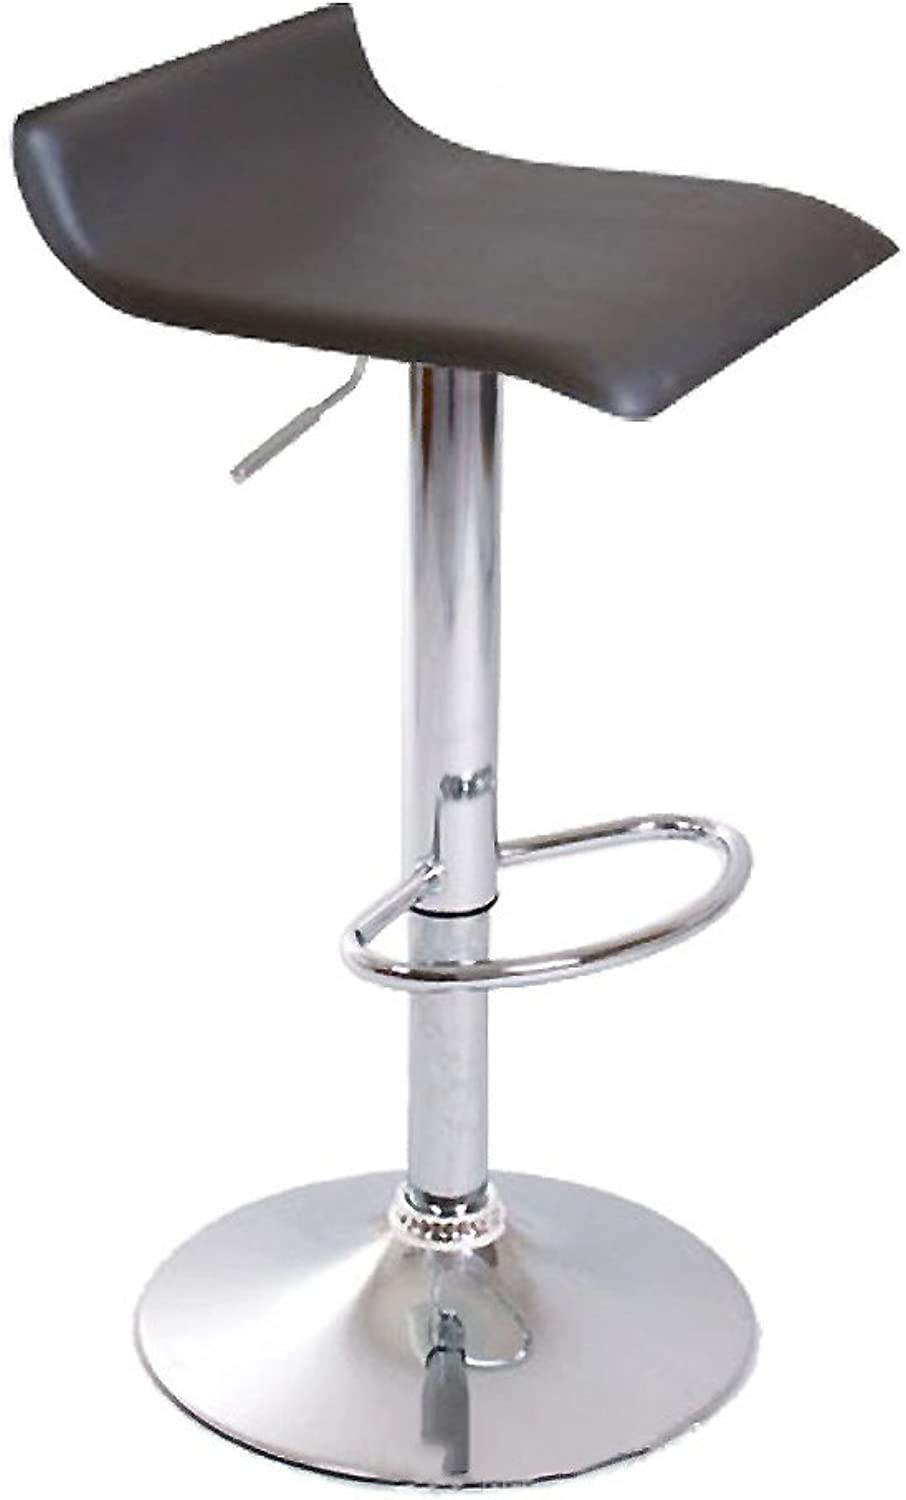 Adjustable Height Bar Stools, Fashion Swivel Kitchen Chair Electroplating high Foot Lift Chair Leatherette Exterior Base for Breakfast Bar Counter-G